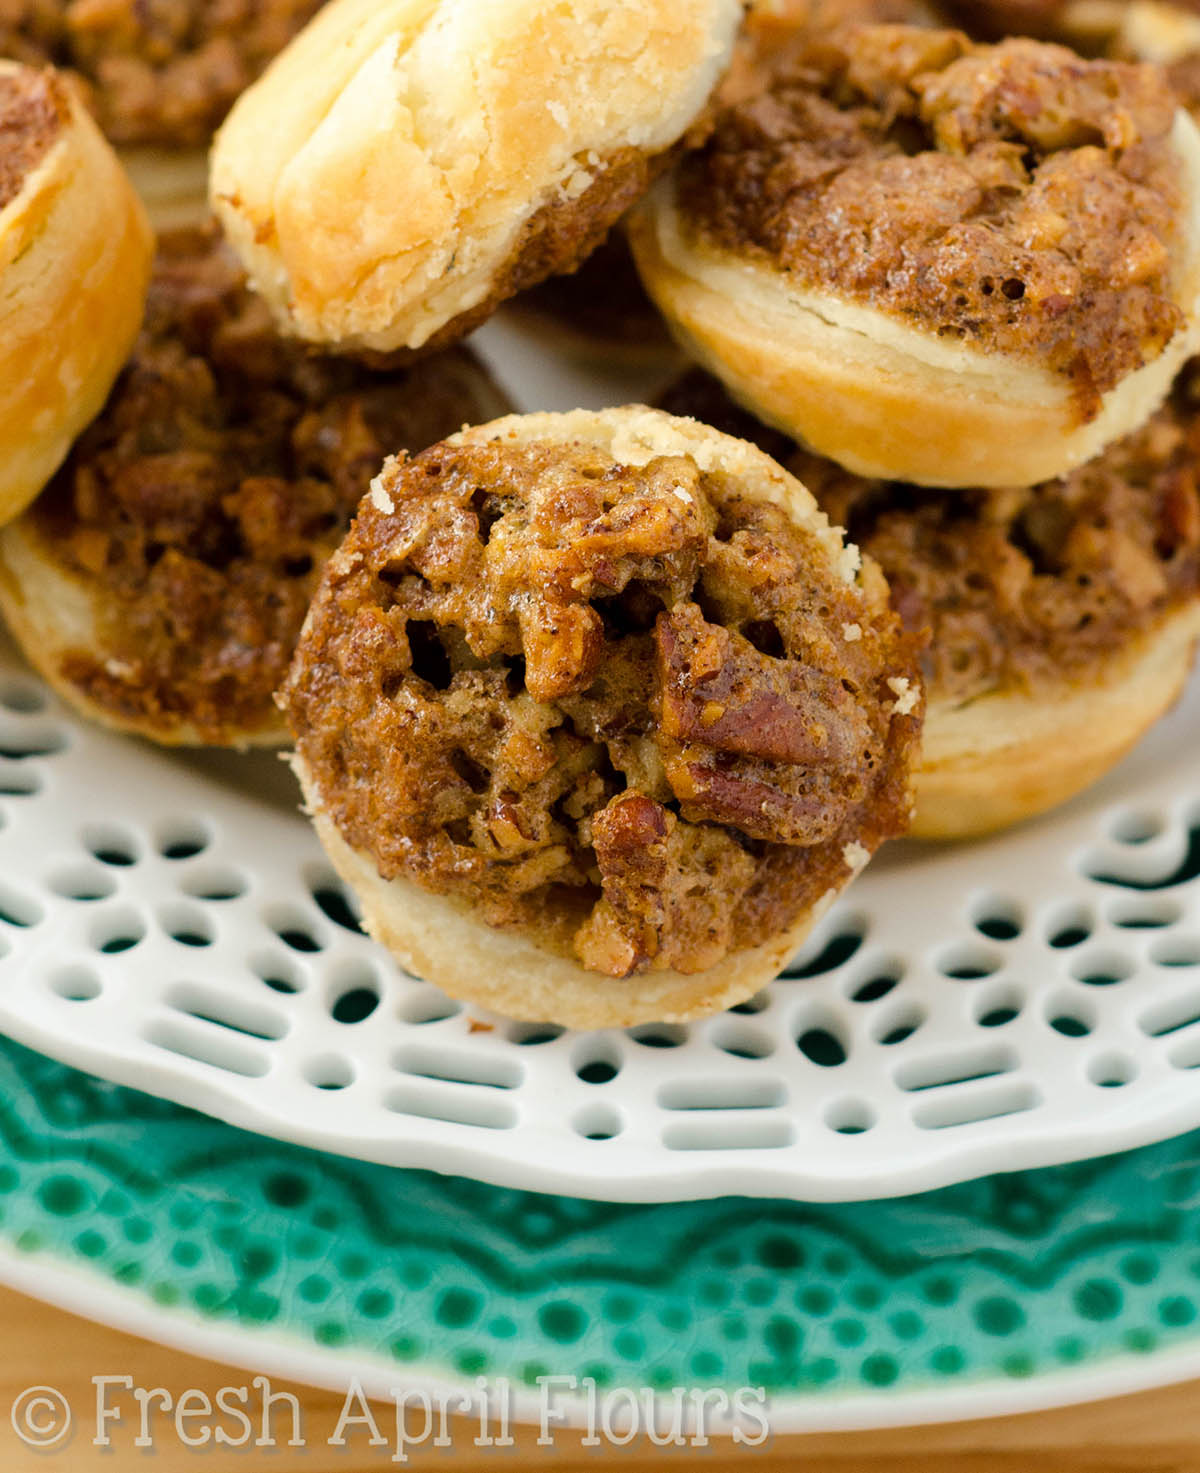 Pecan Pie Tarts: Bite-size pie tarts made with my favorite homemade pie crust and a soft and crispy pecan pie filling.